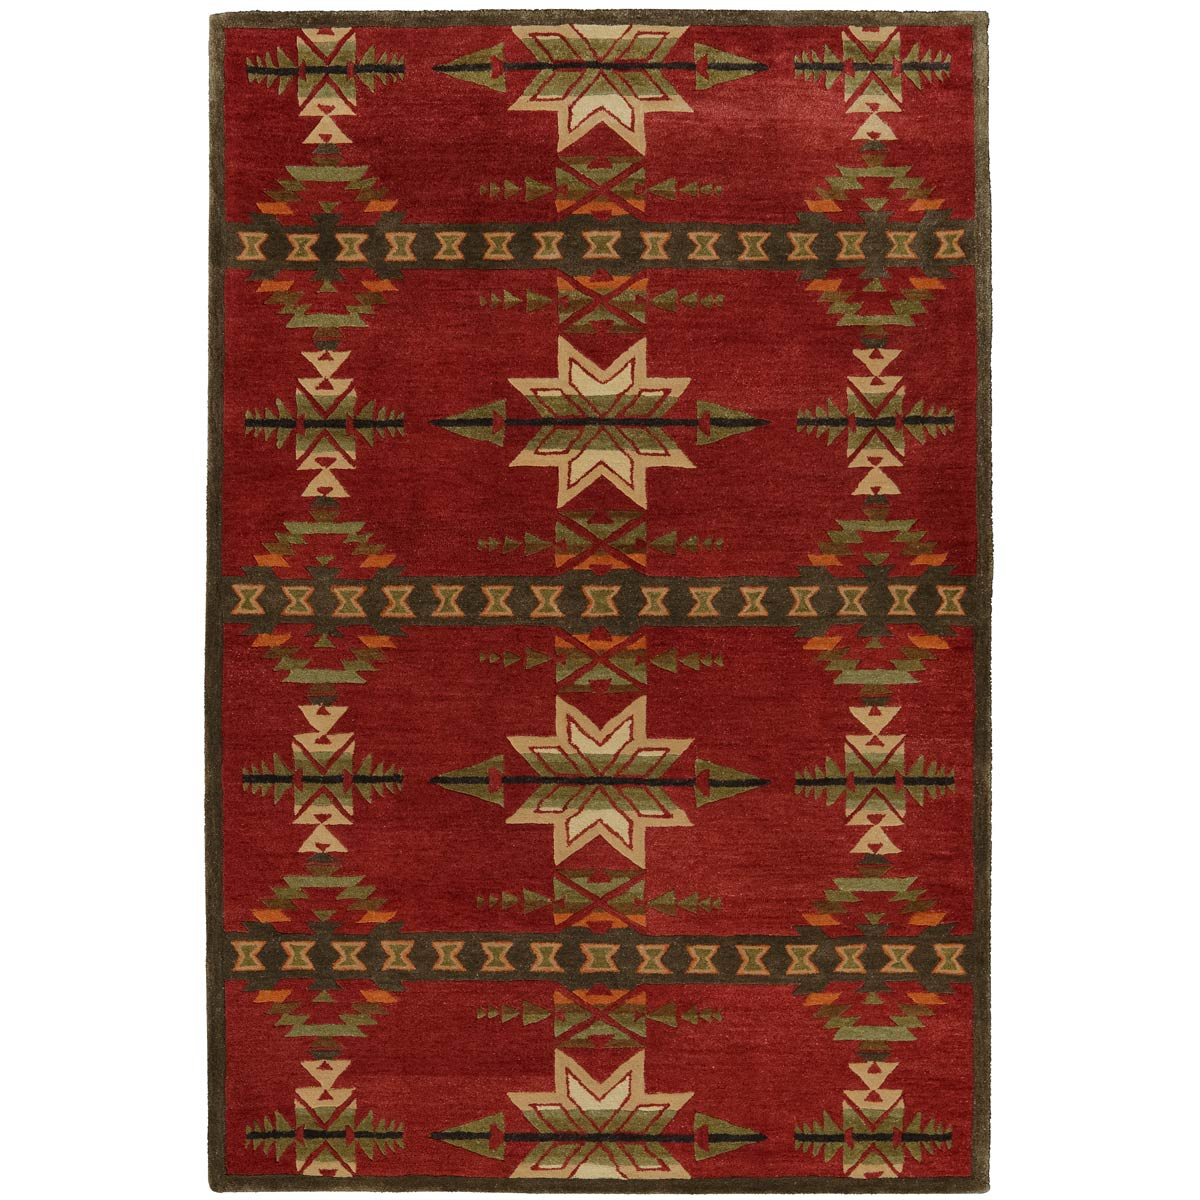 Gatekeeper Red Rug - 8 x 10